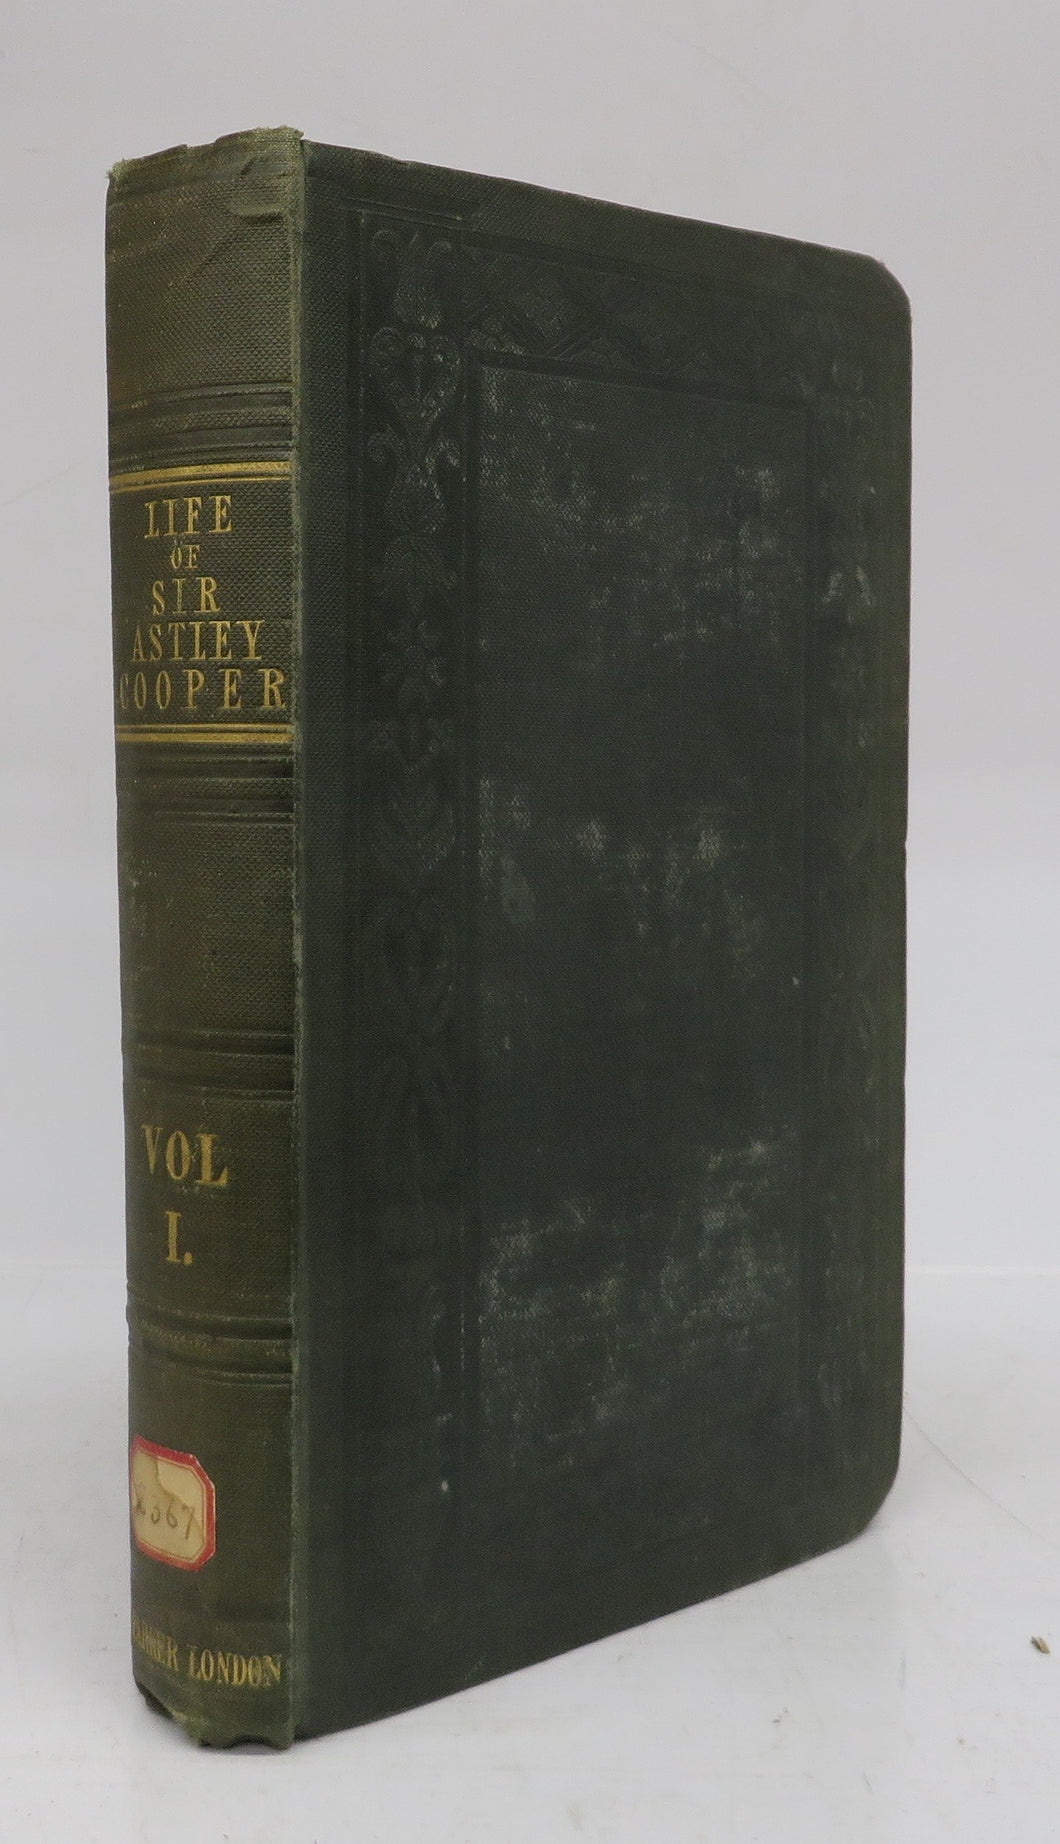 The Life of Sir Astley Cooper, Bart., Vol. I